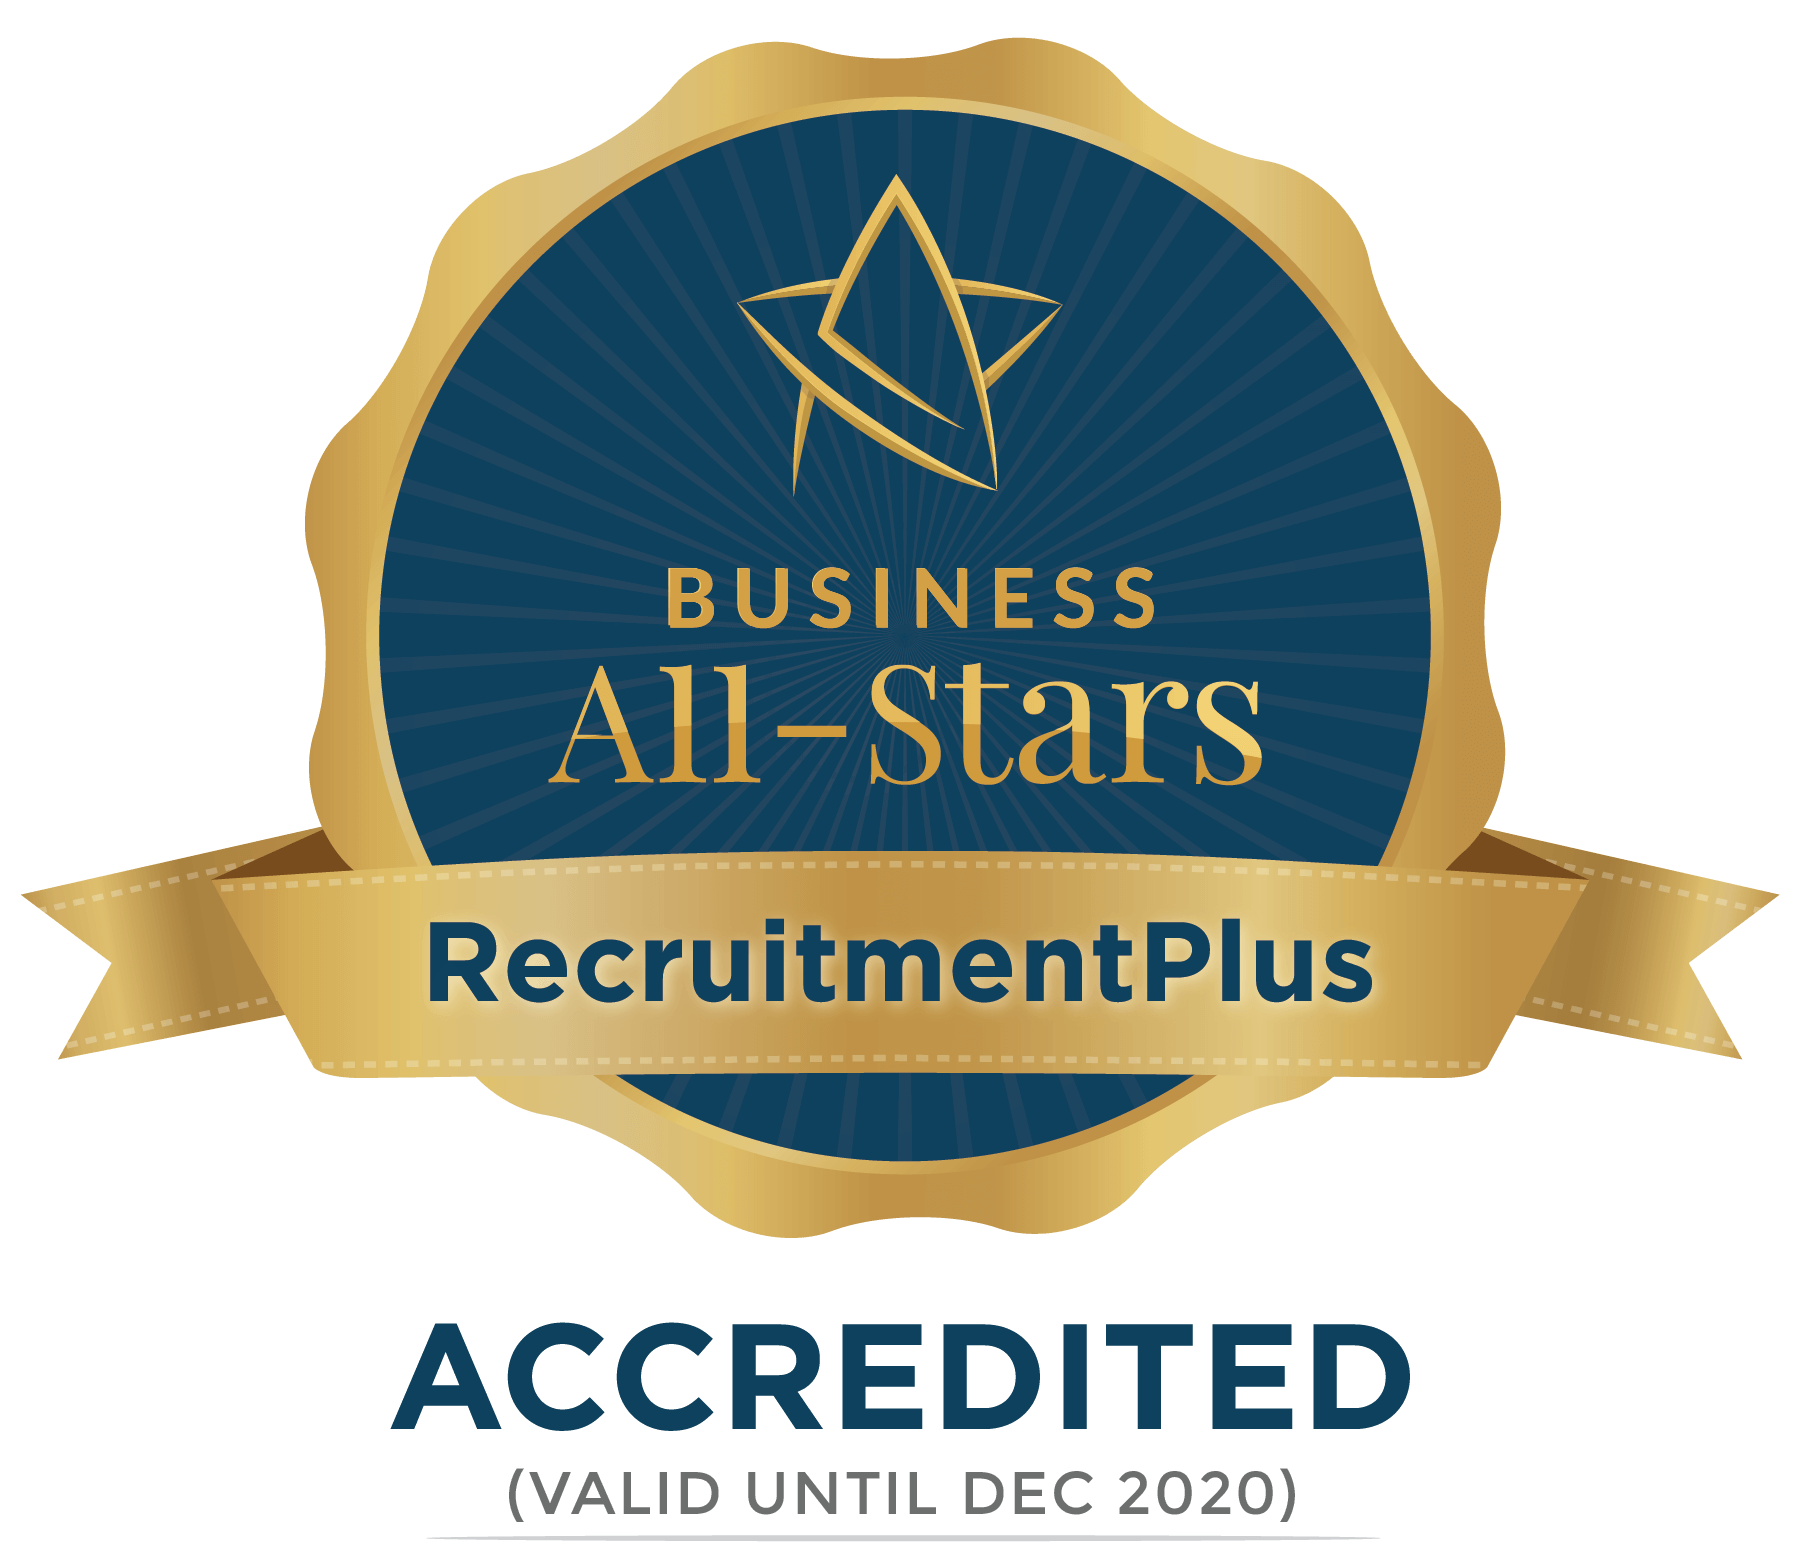 RecruitmentPlus - Business All-Stars Accreditation